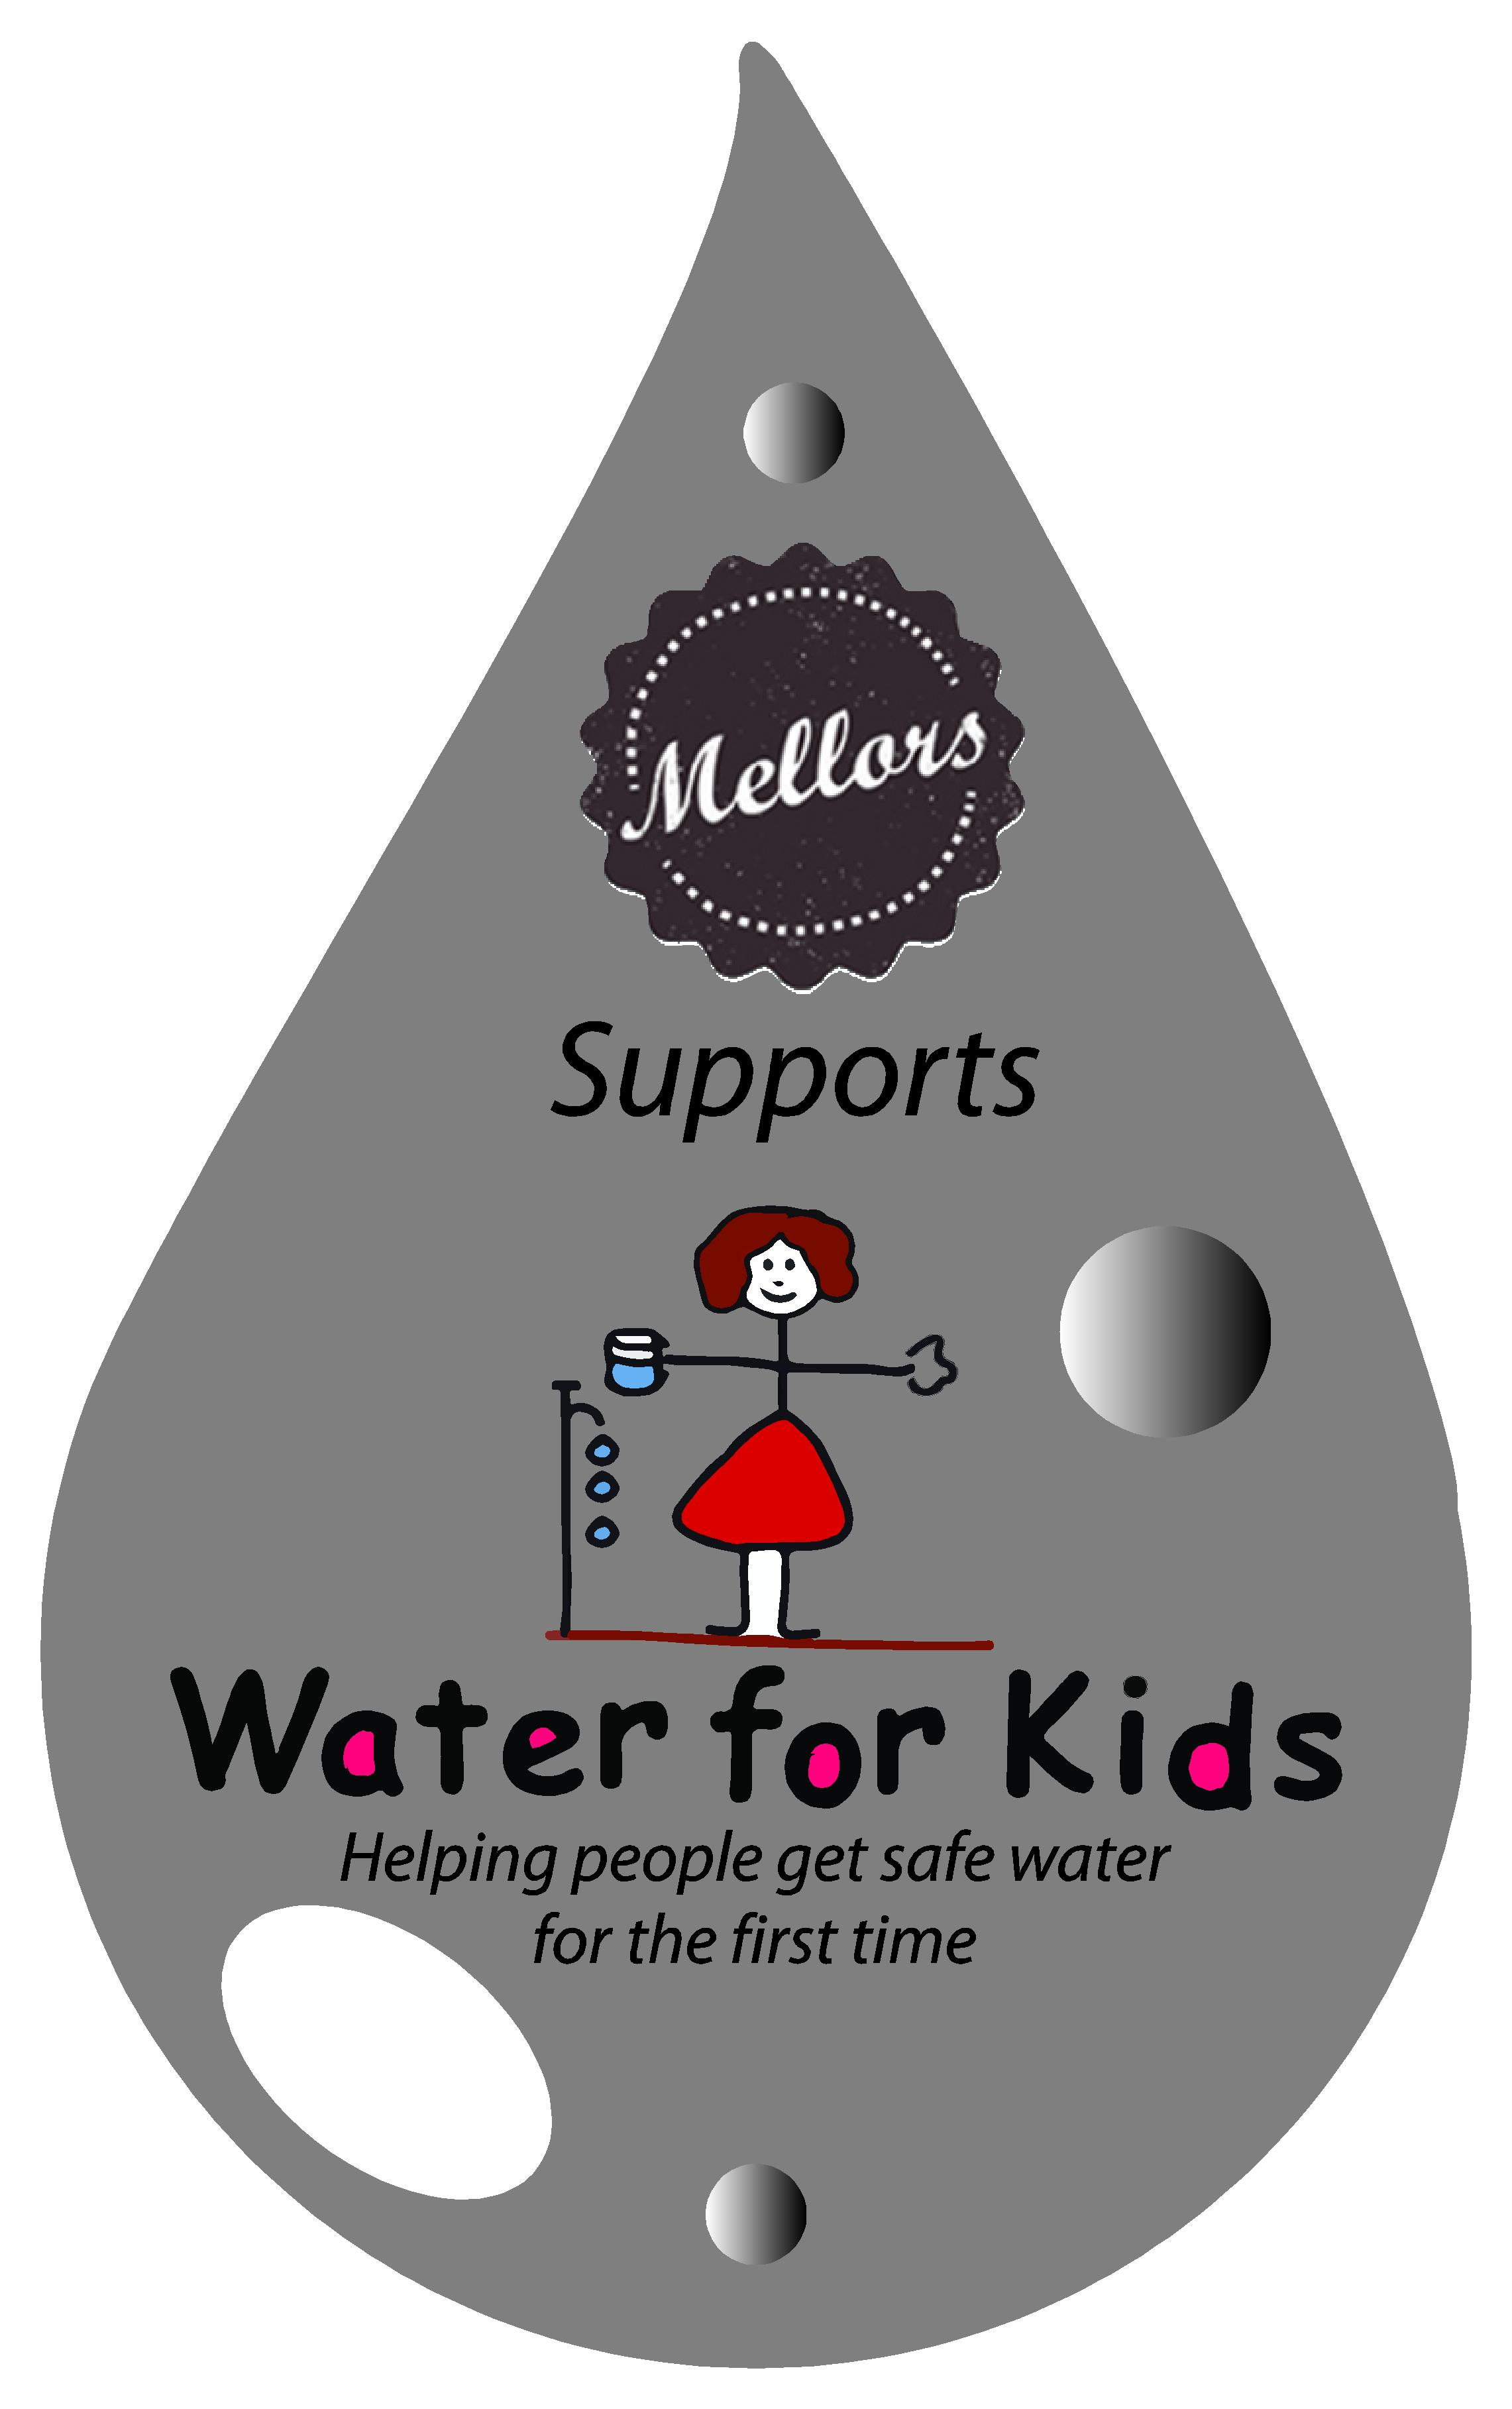 water for kids plaque 03.04.17.jpg